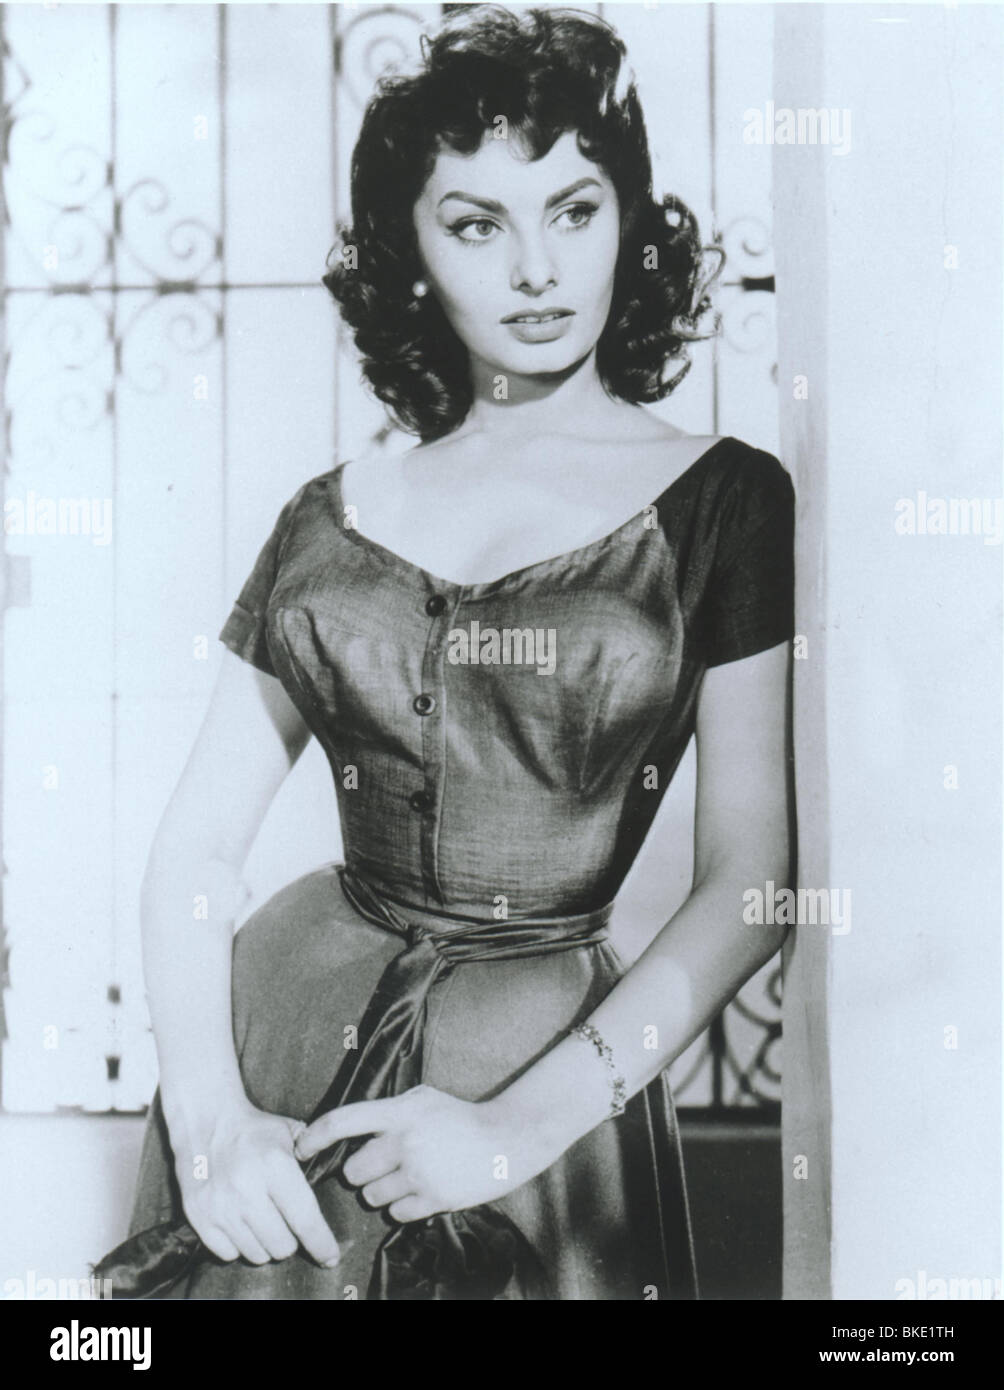 THE PRIDE AND THE PASSION (1957) SOPHIA LOREN PRPS 003P - Stock Image